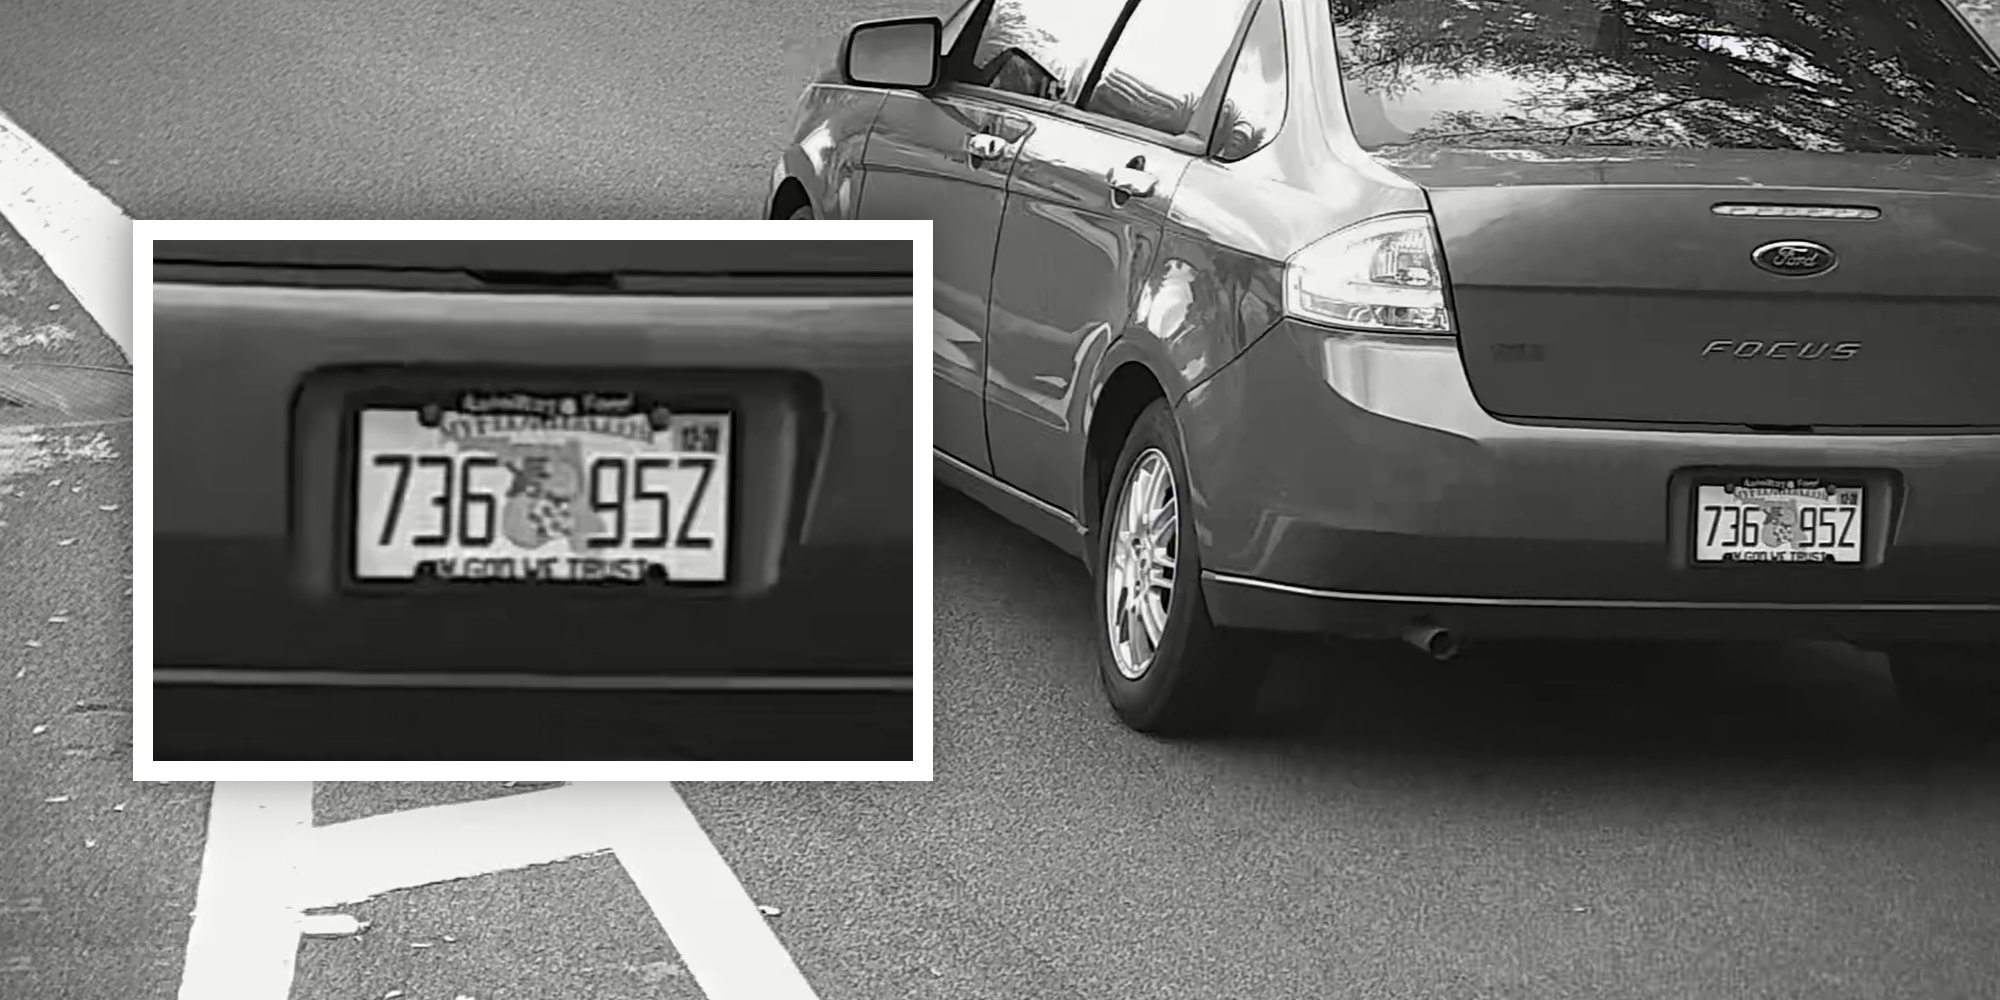 Infinity Scroll - LPR - License Plate Recognition